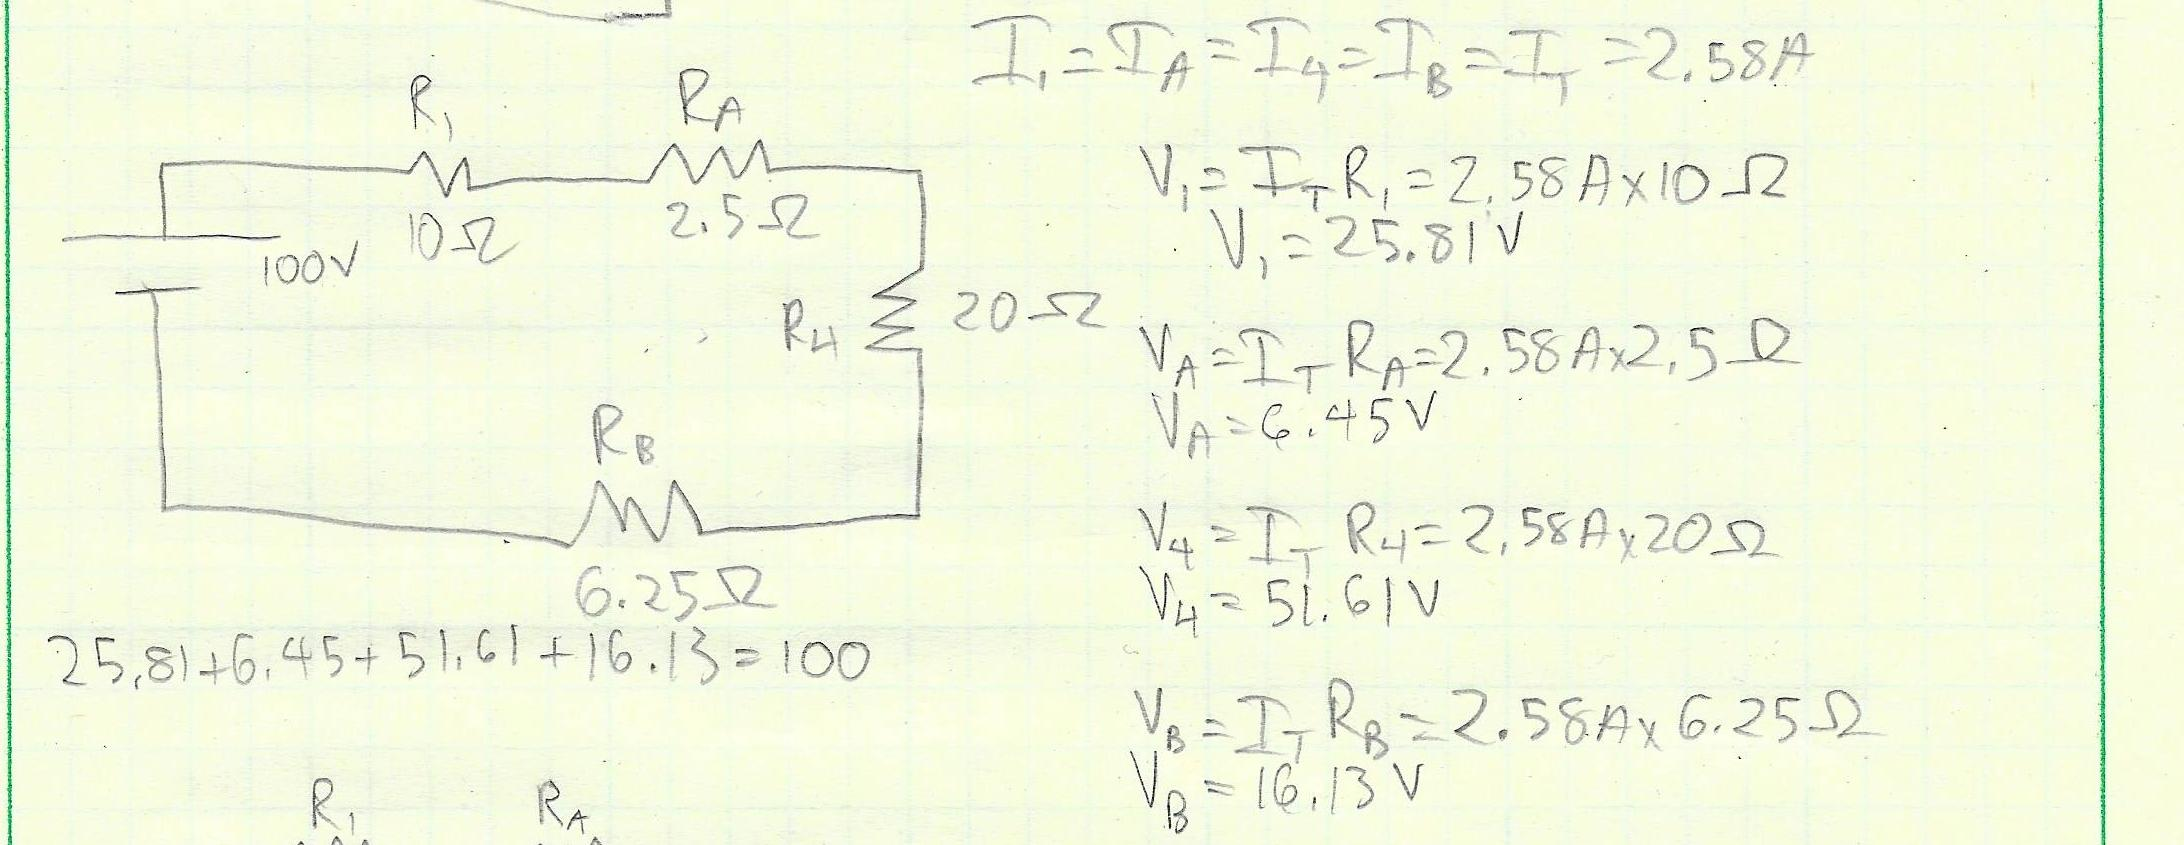 Picture of Work Back Up the Diagrams With the Information From the Reduced Equivalent Circuit to Solve for the Power, Current and Voltage Consumption of Each Resistor